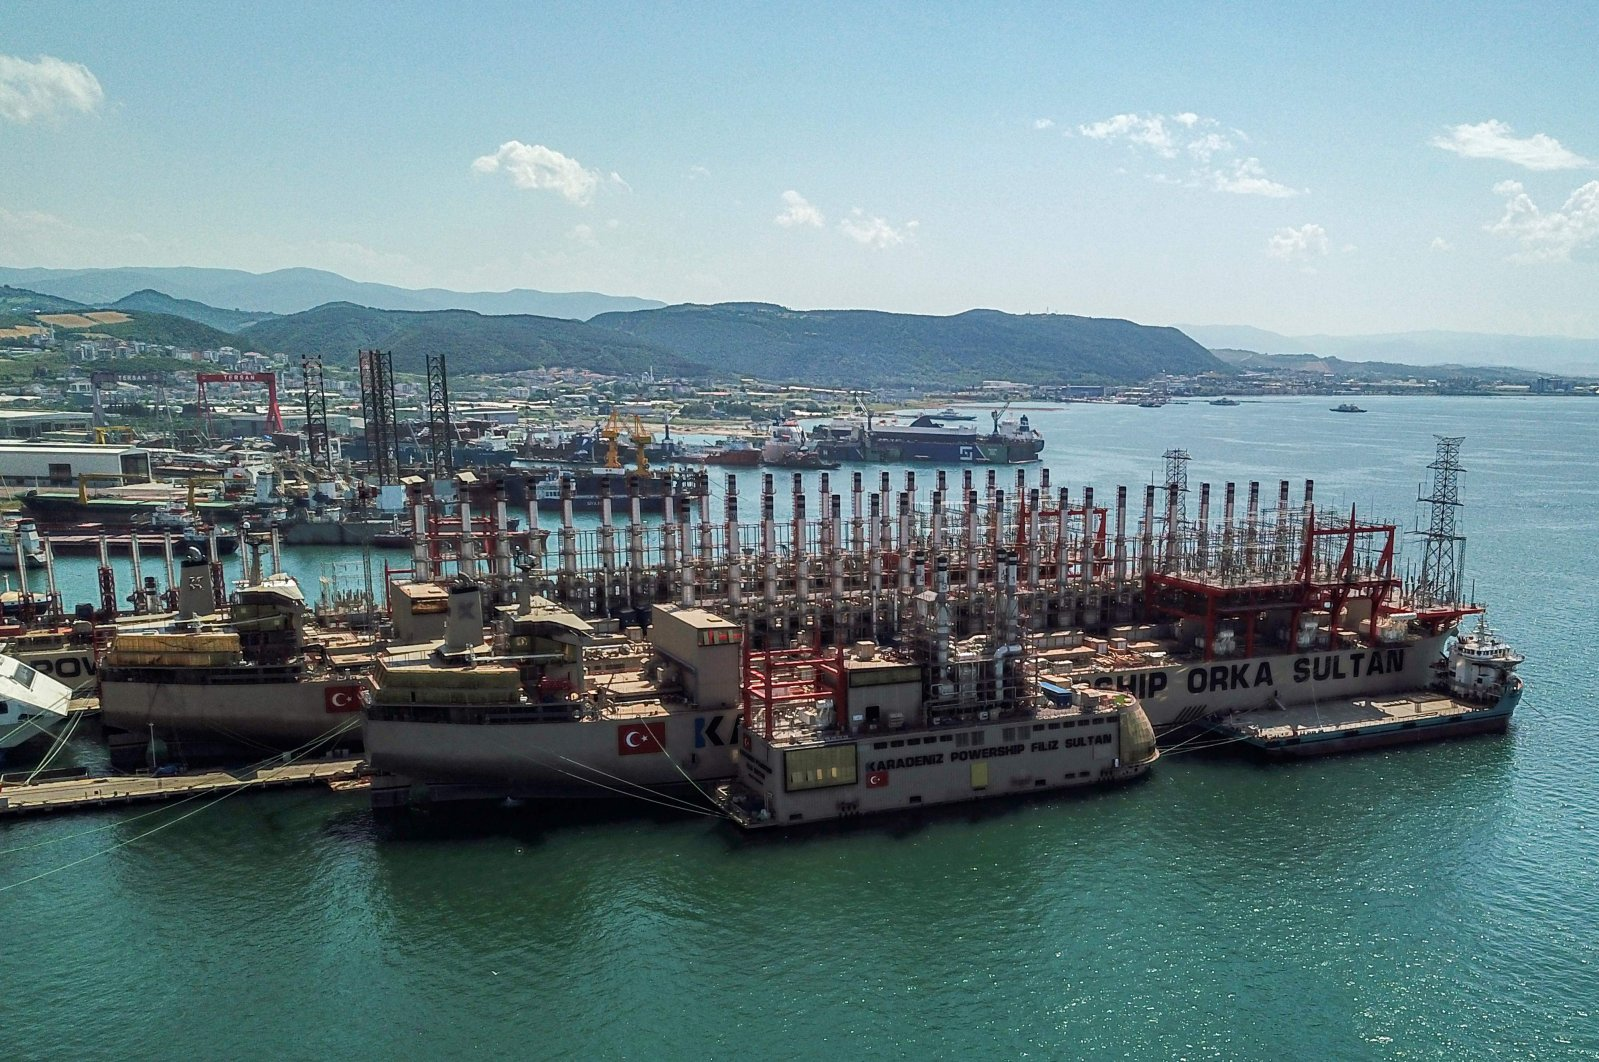 The powerships Orca Sultan (front) and Raif Bey (back) are seen docked in a shipyard in Altinova district, Yalova, Turkey, June 16, 2020. (AFP Photo)